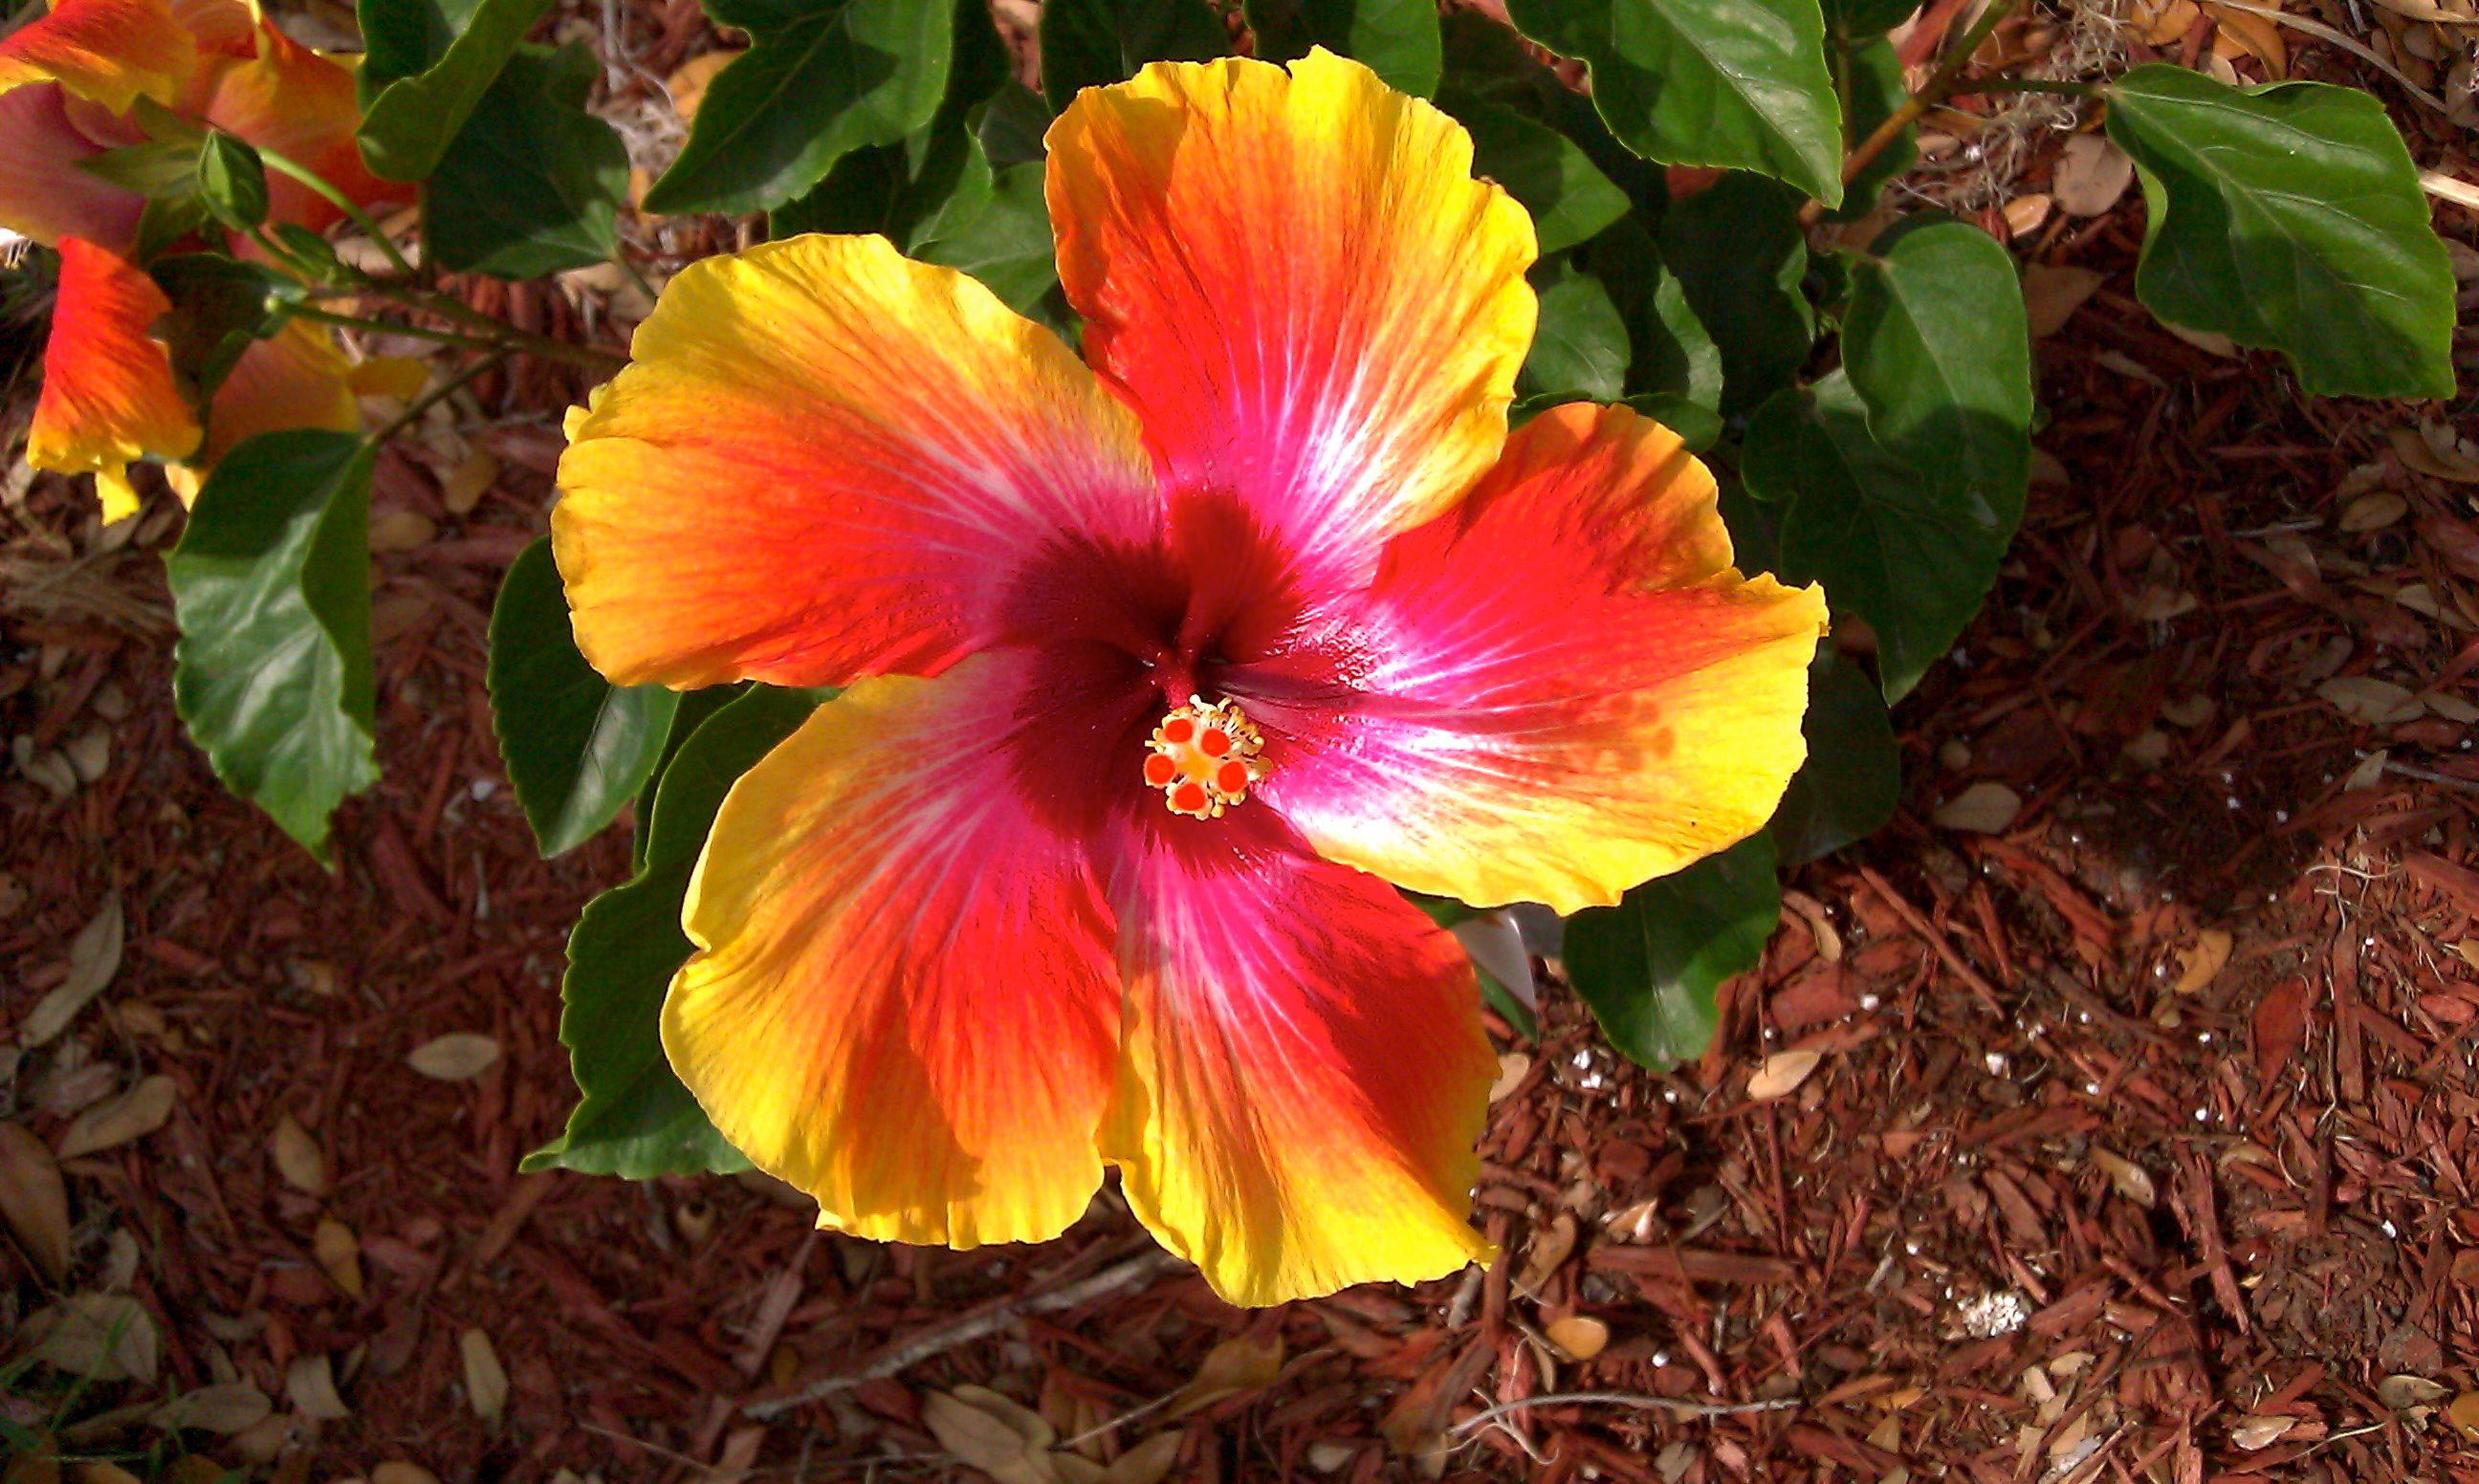 HibisKISS <3 Mixture of all the colors in one flower. | Just Stuff ...